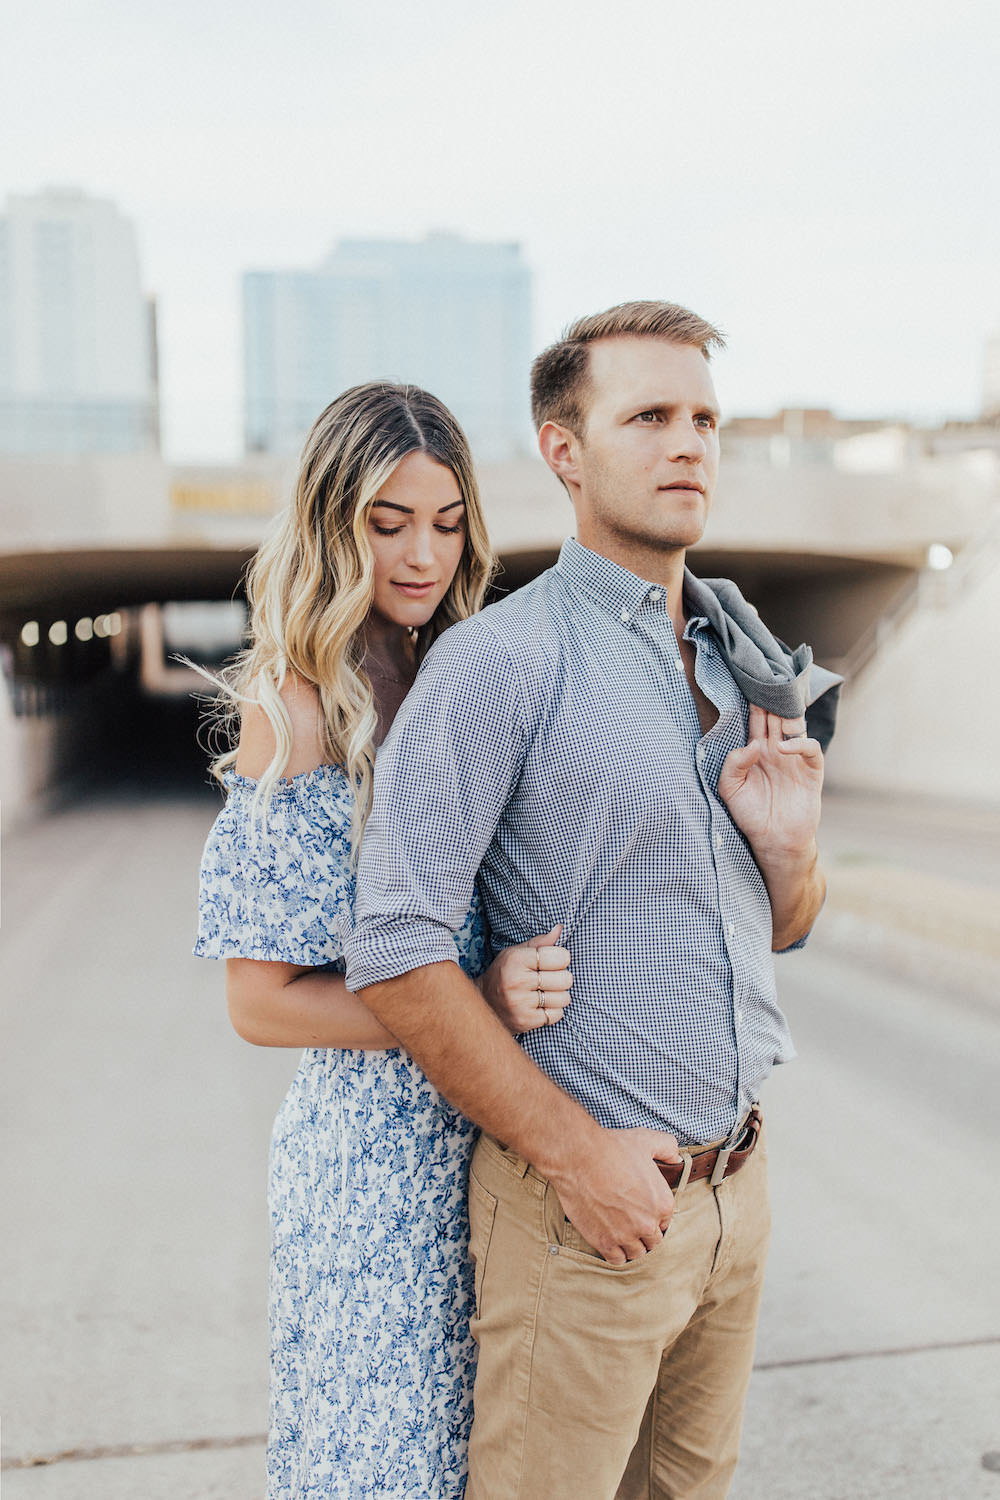 Caitlin Lindquist of the Arizona fashion blog Dash of Darling and her husband Ben share couples date night outfits and how to keep the spark alive.